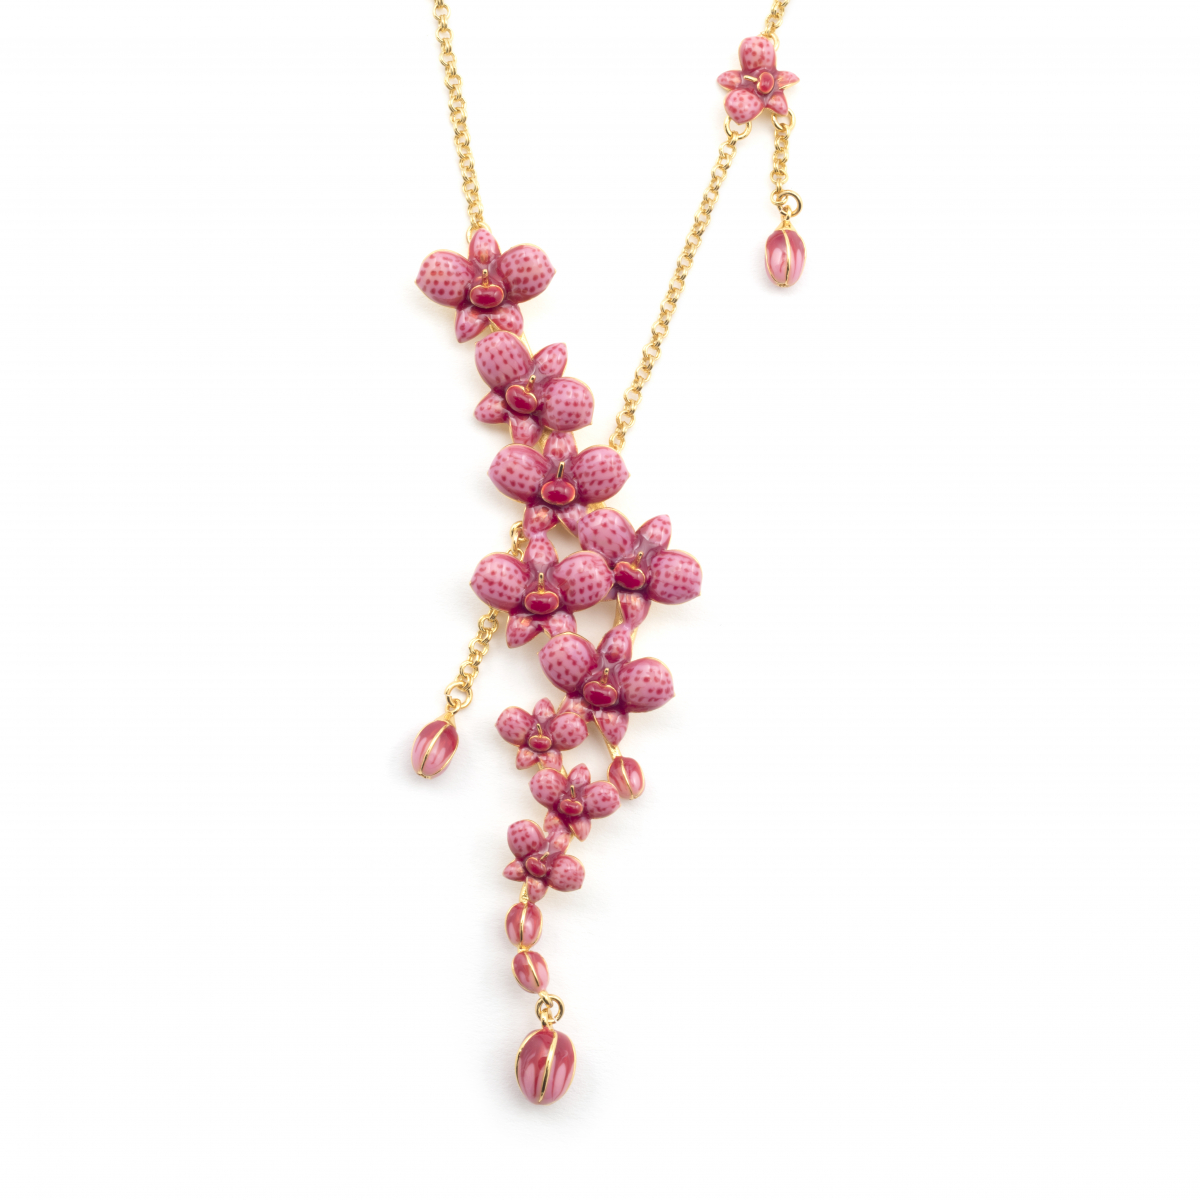 Orchid Statement Torque Necklace